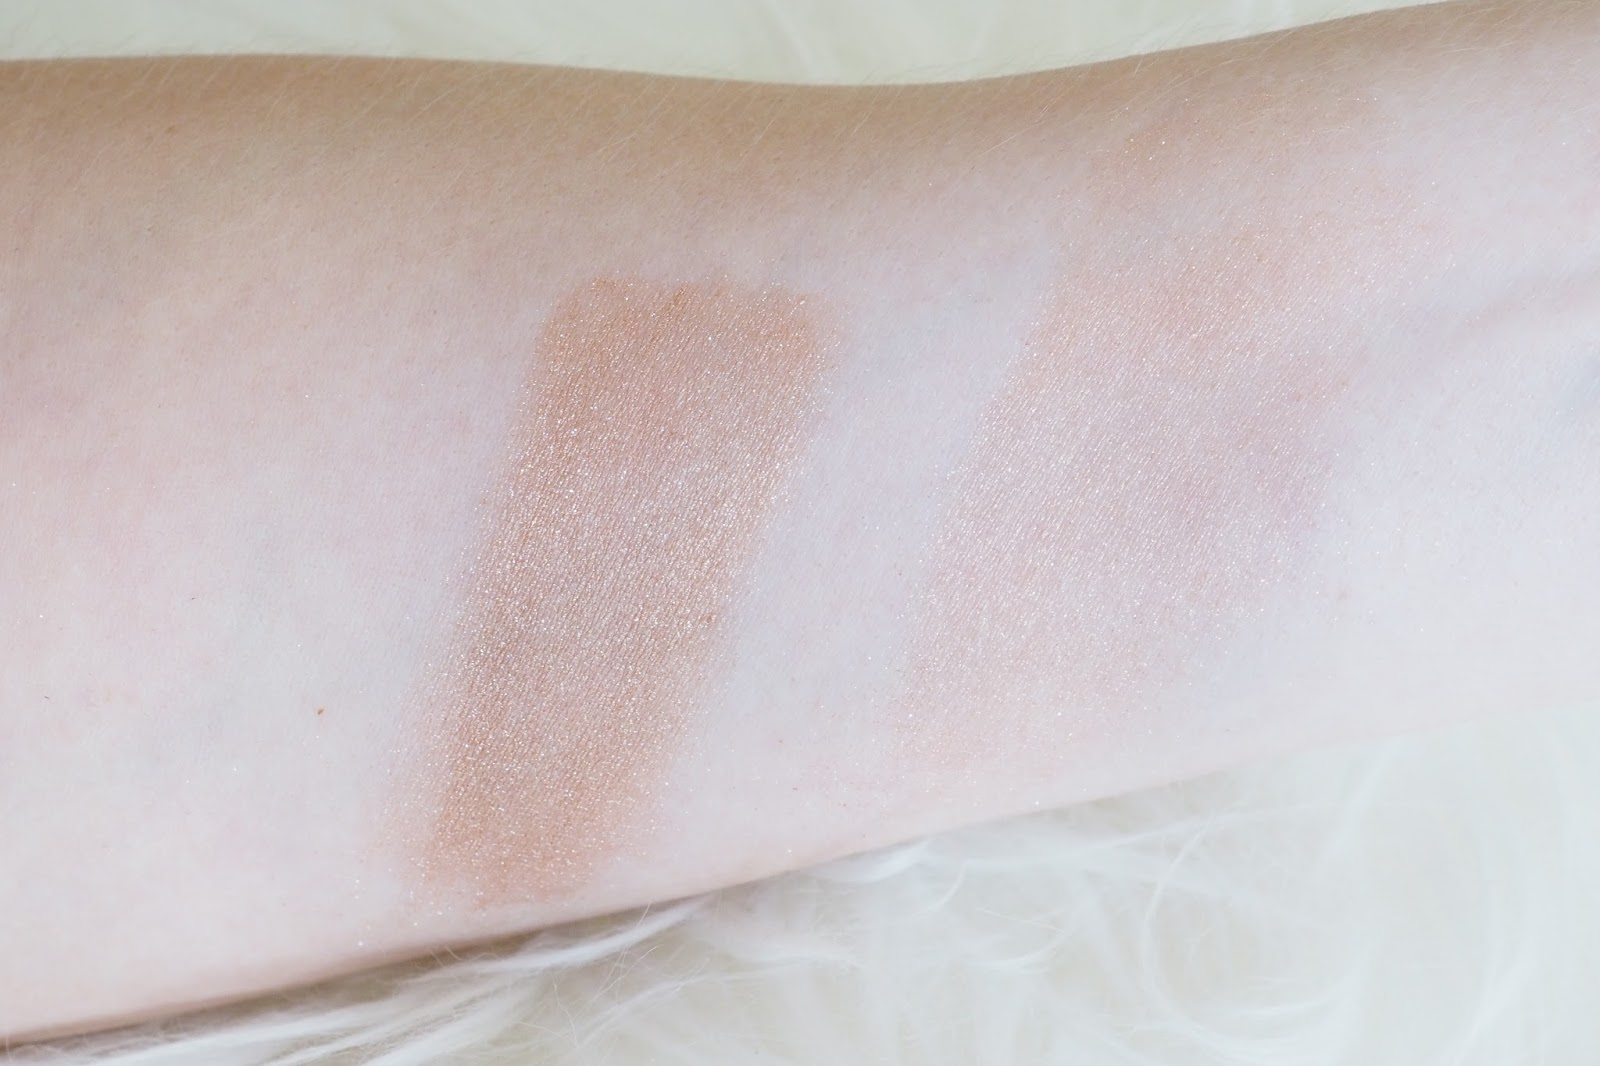 MAC Mariah Carey Touch My Body Powder Swatches